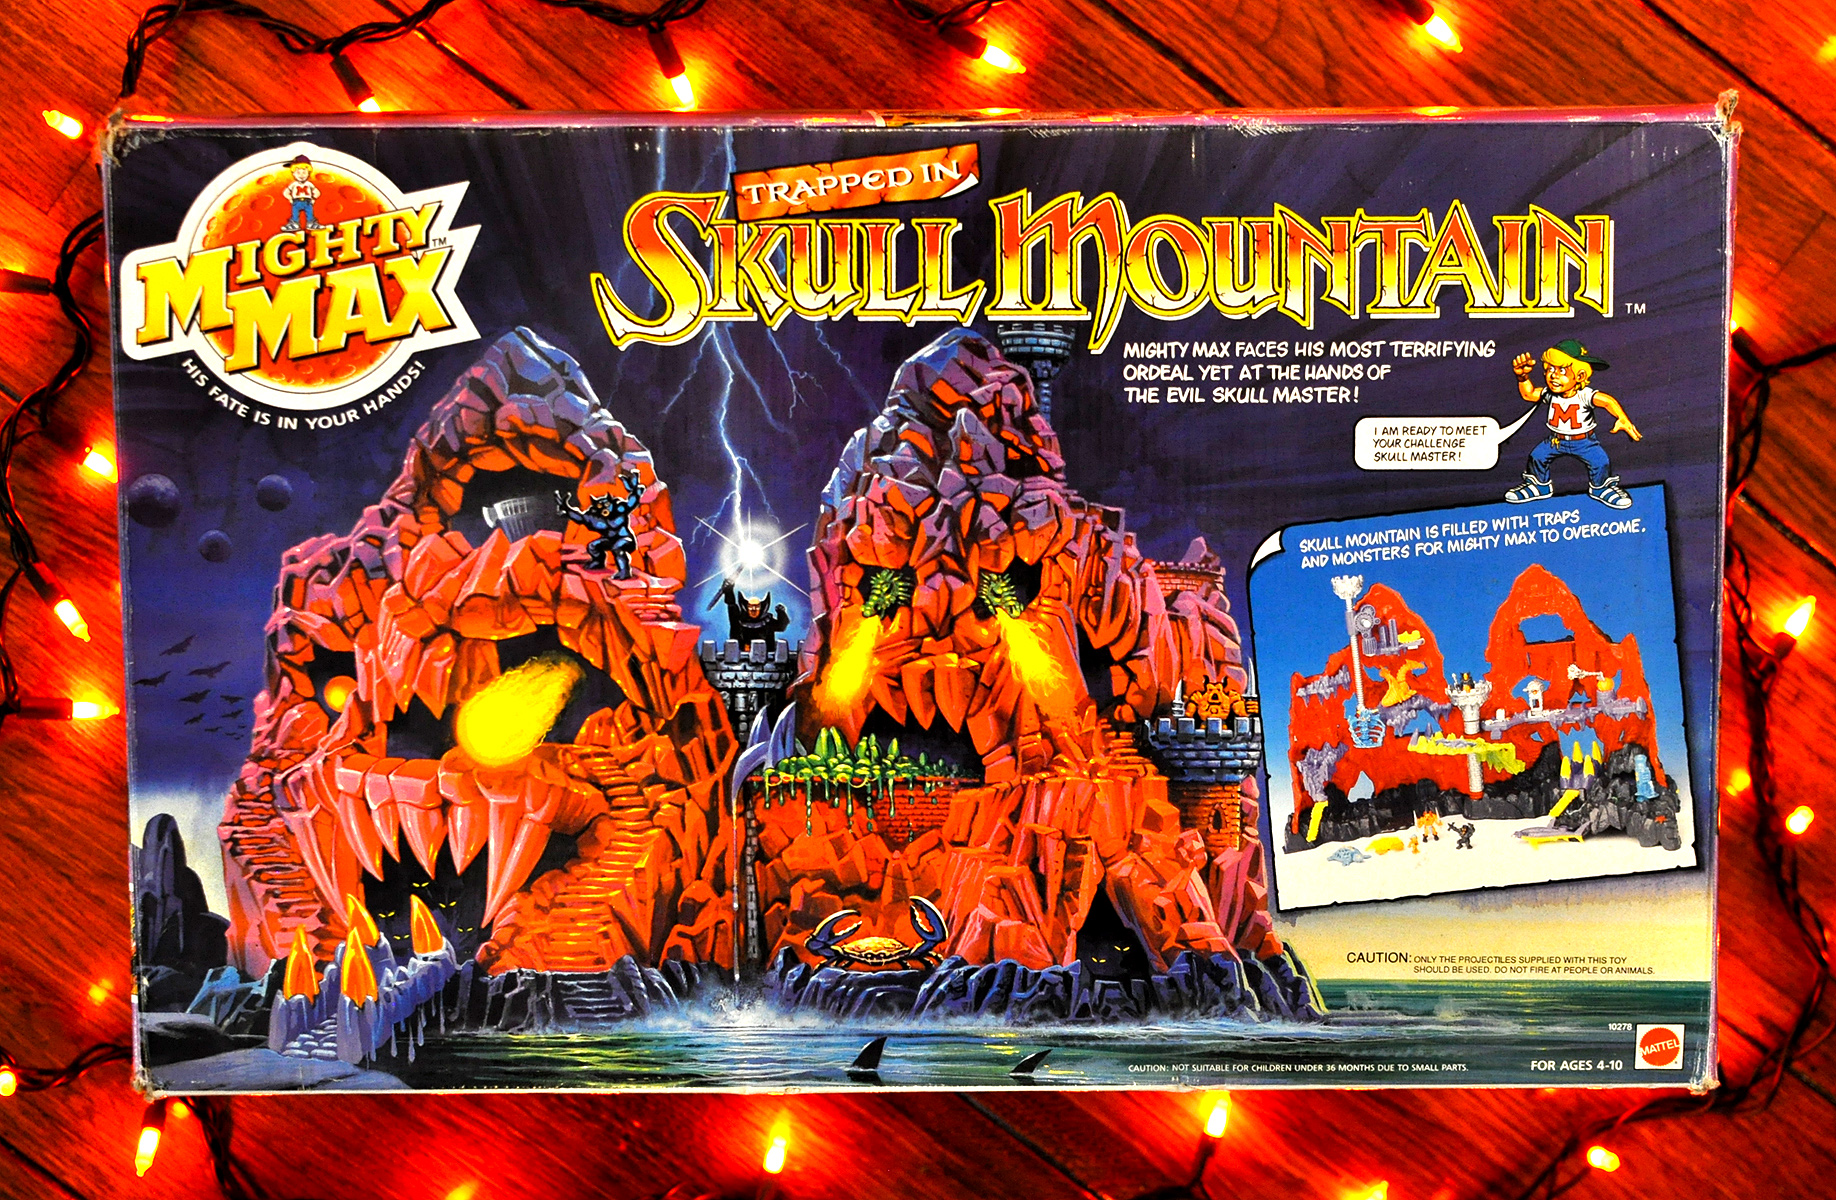 mighty-max-trapped-in-skull-mountain-playset-promo.jpg